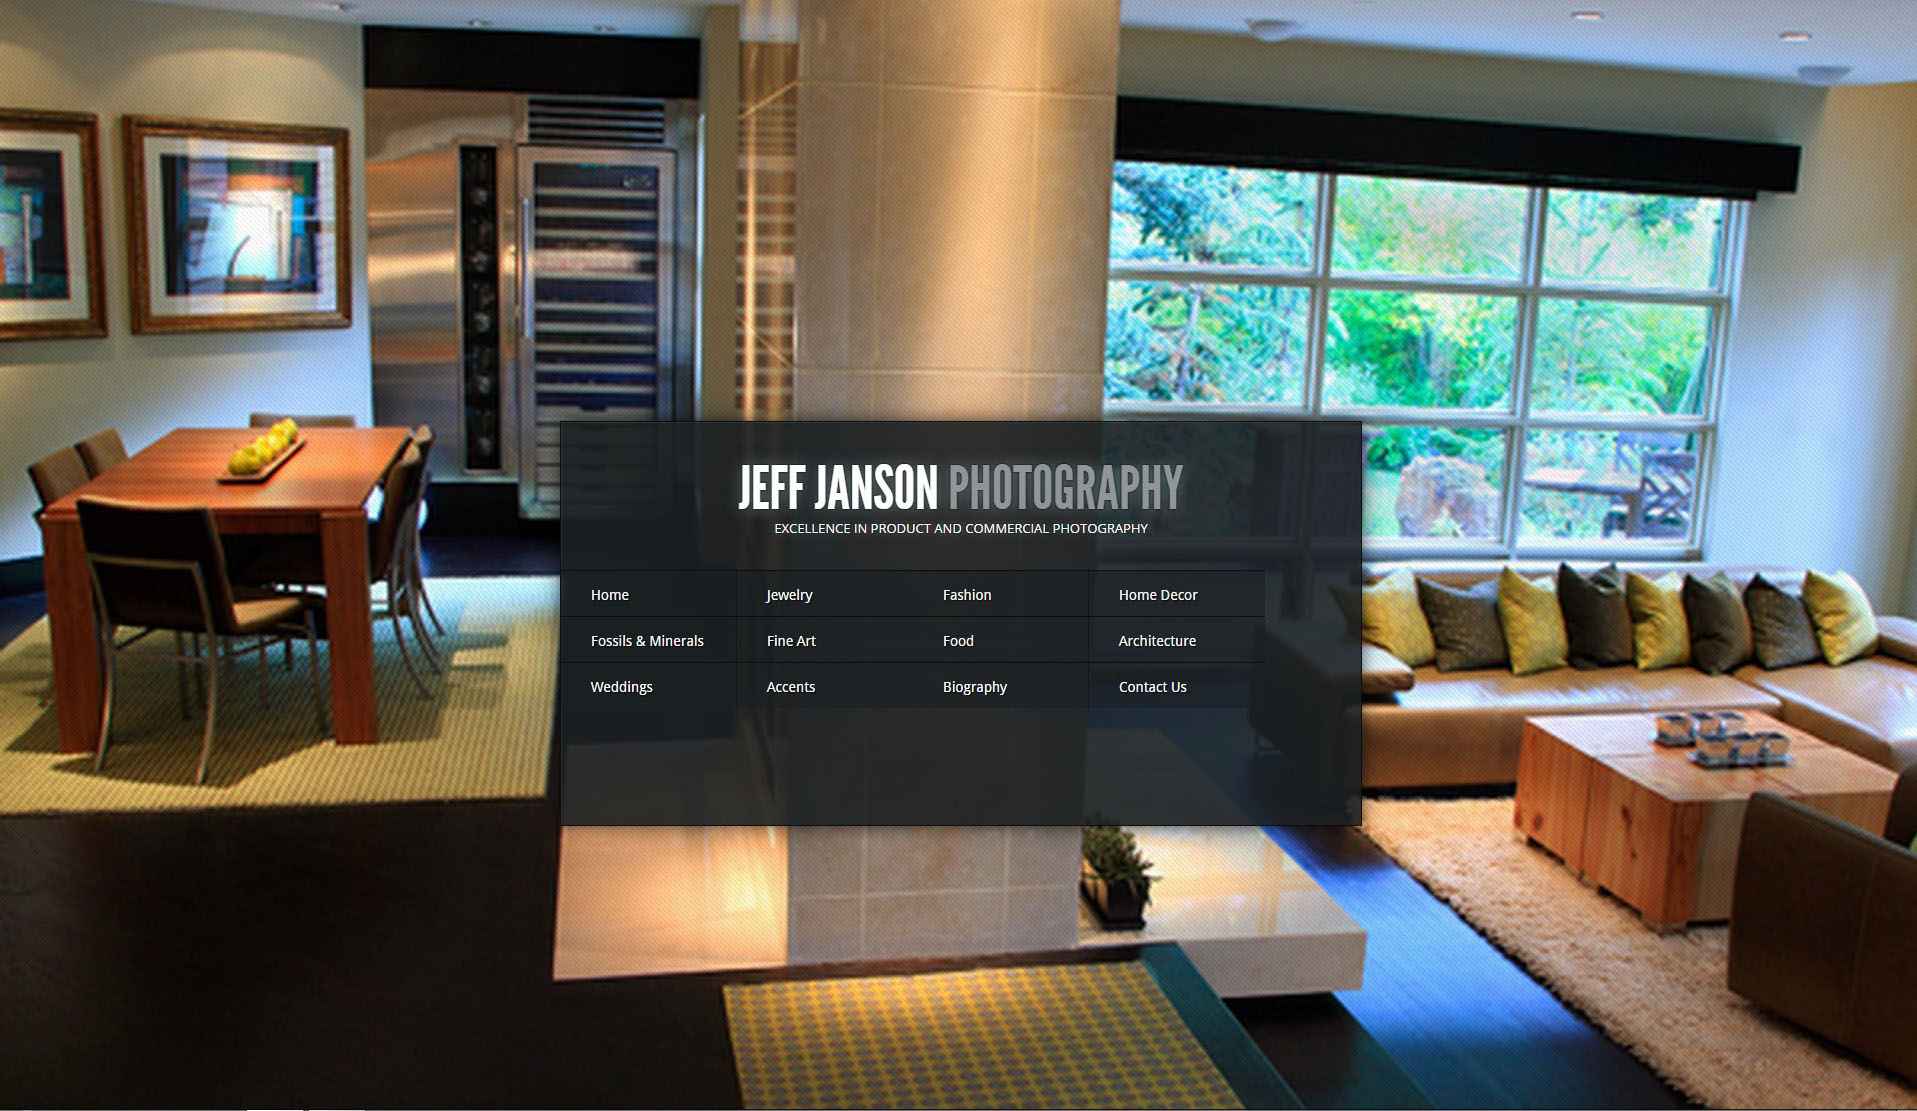 Jeff Janson Commercial Photography